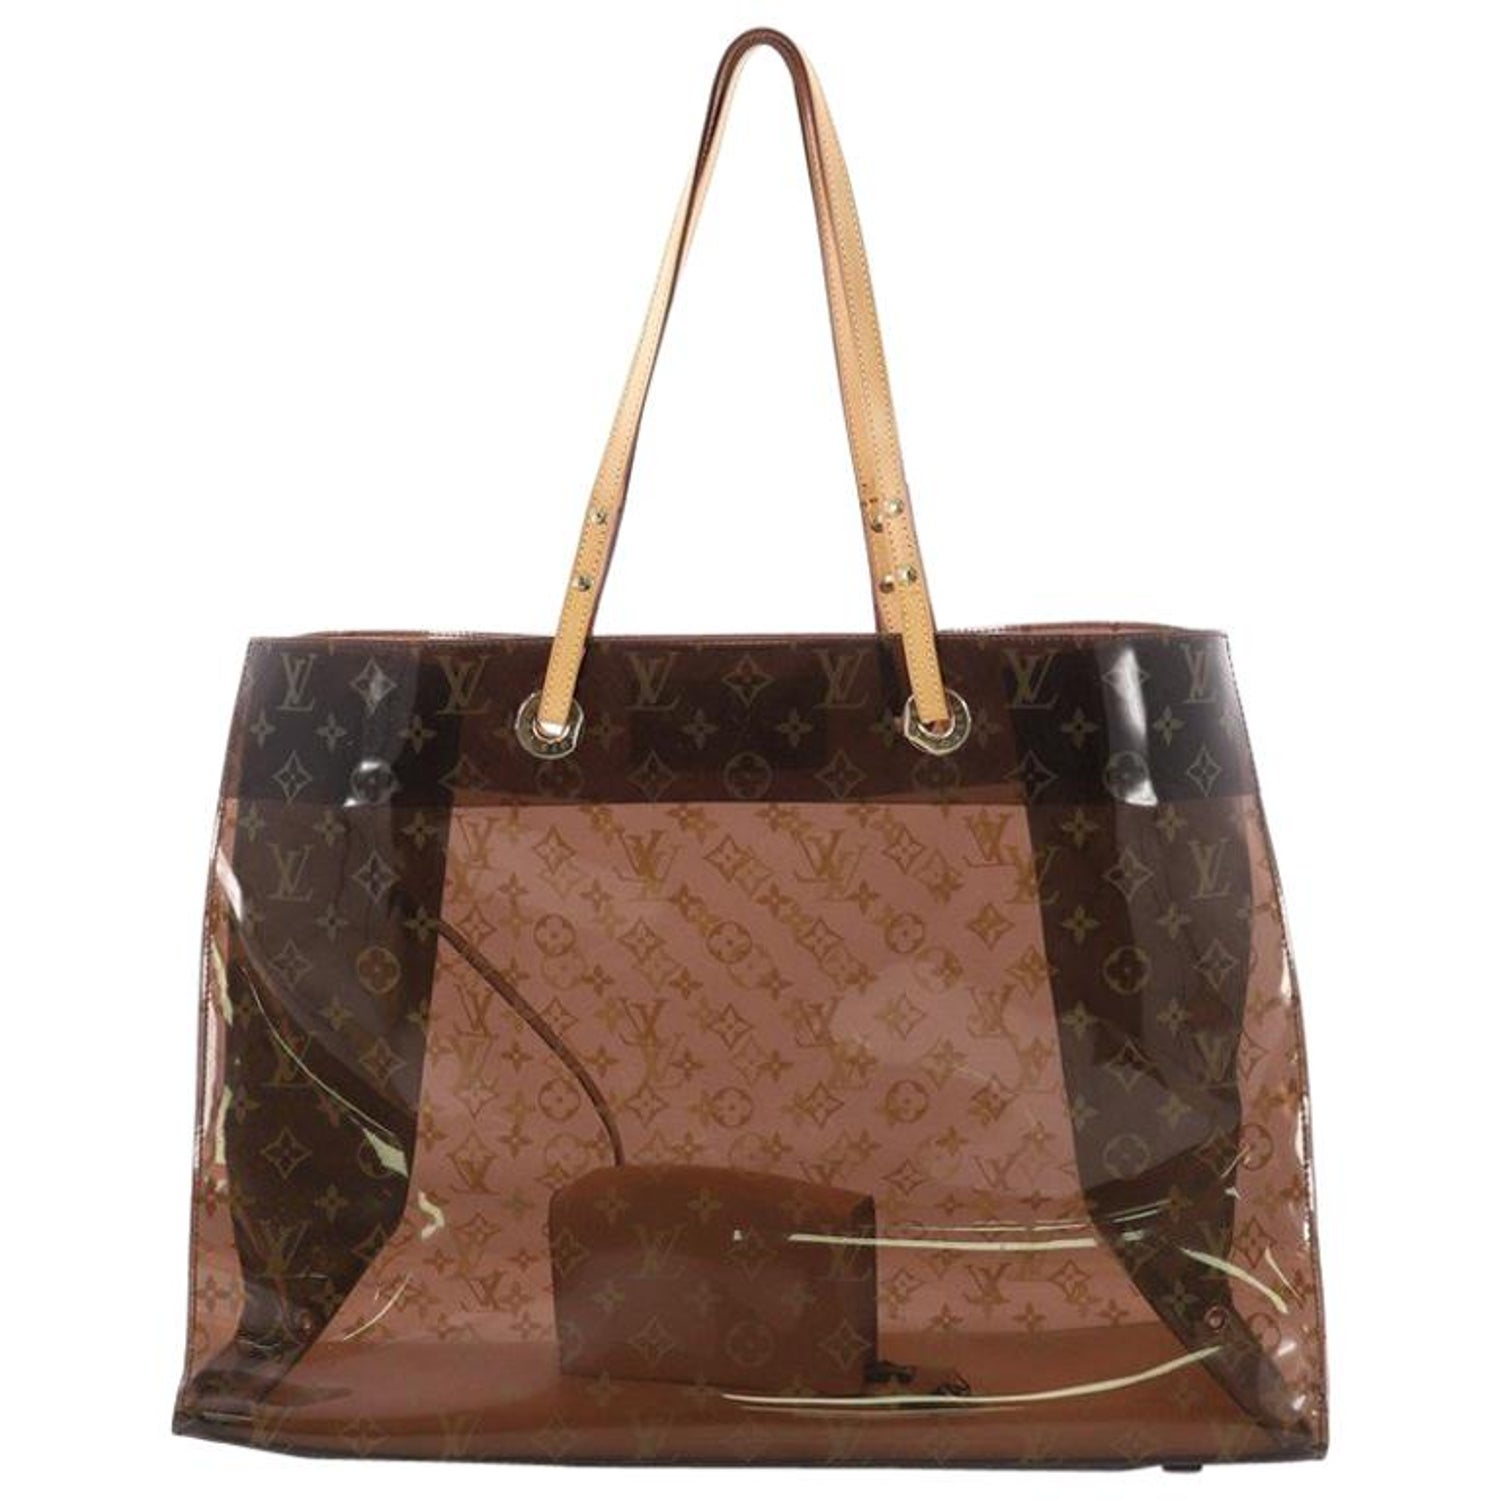 9d9ec43c2f76 Louis Vuitton Ambre Sac Cabas Monogram Vinyl GM at 1stdibs